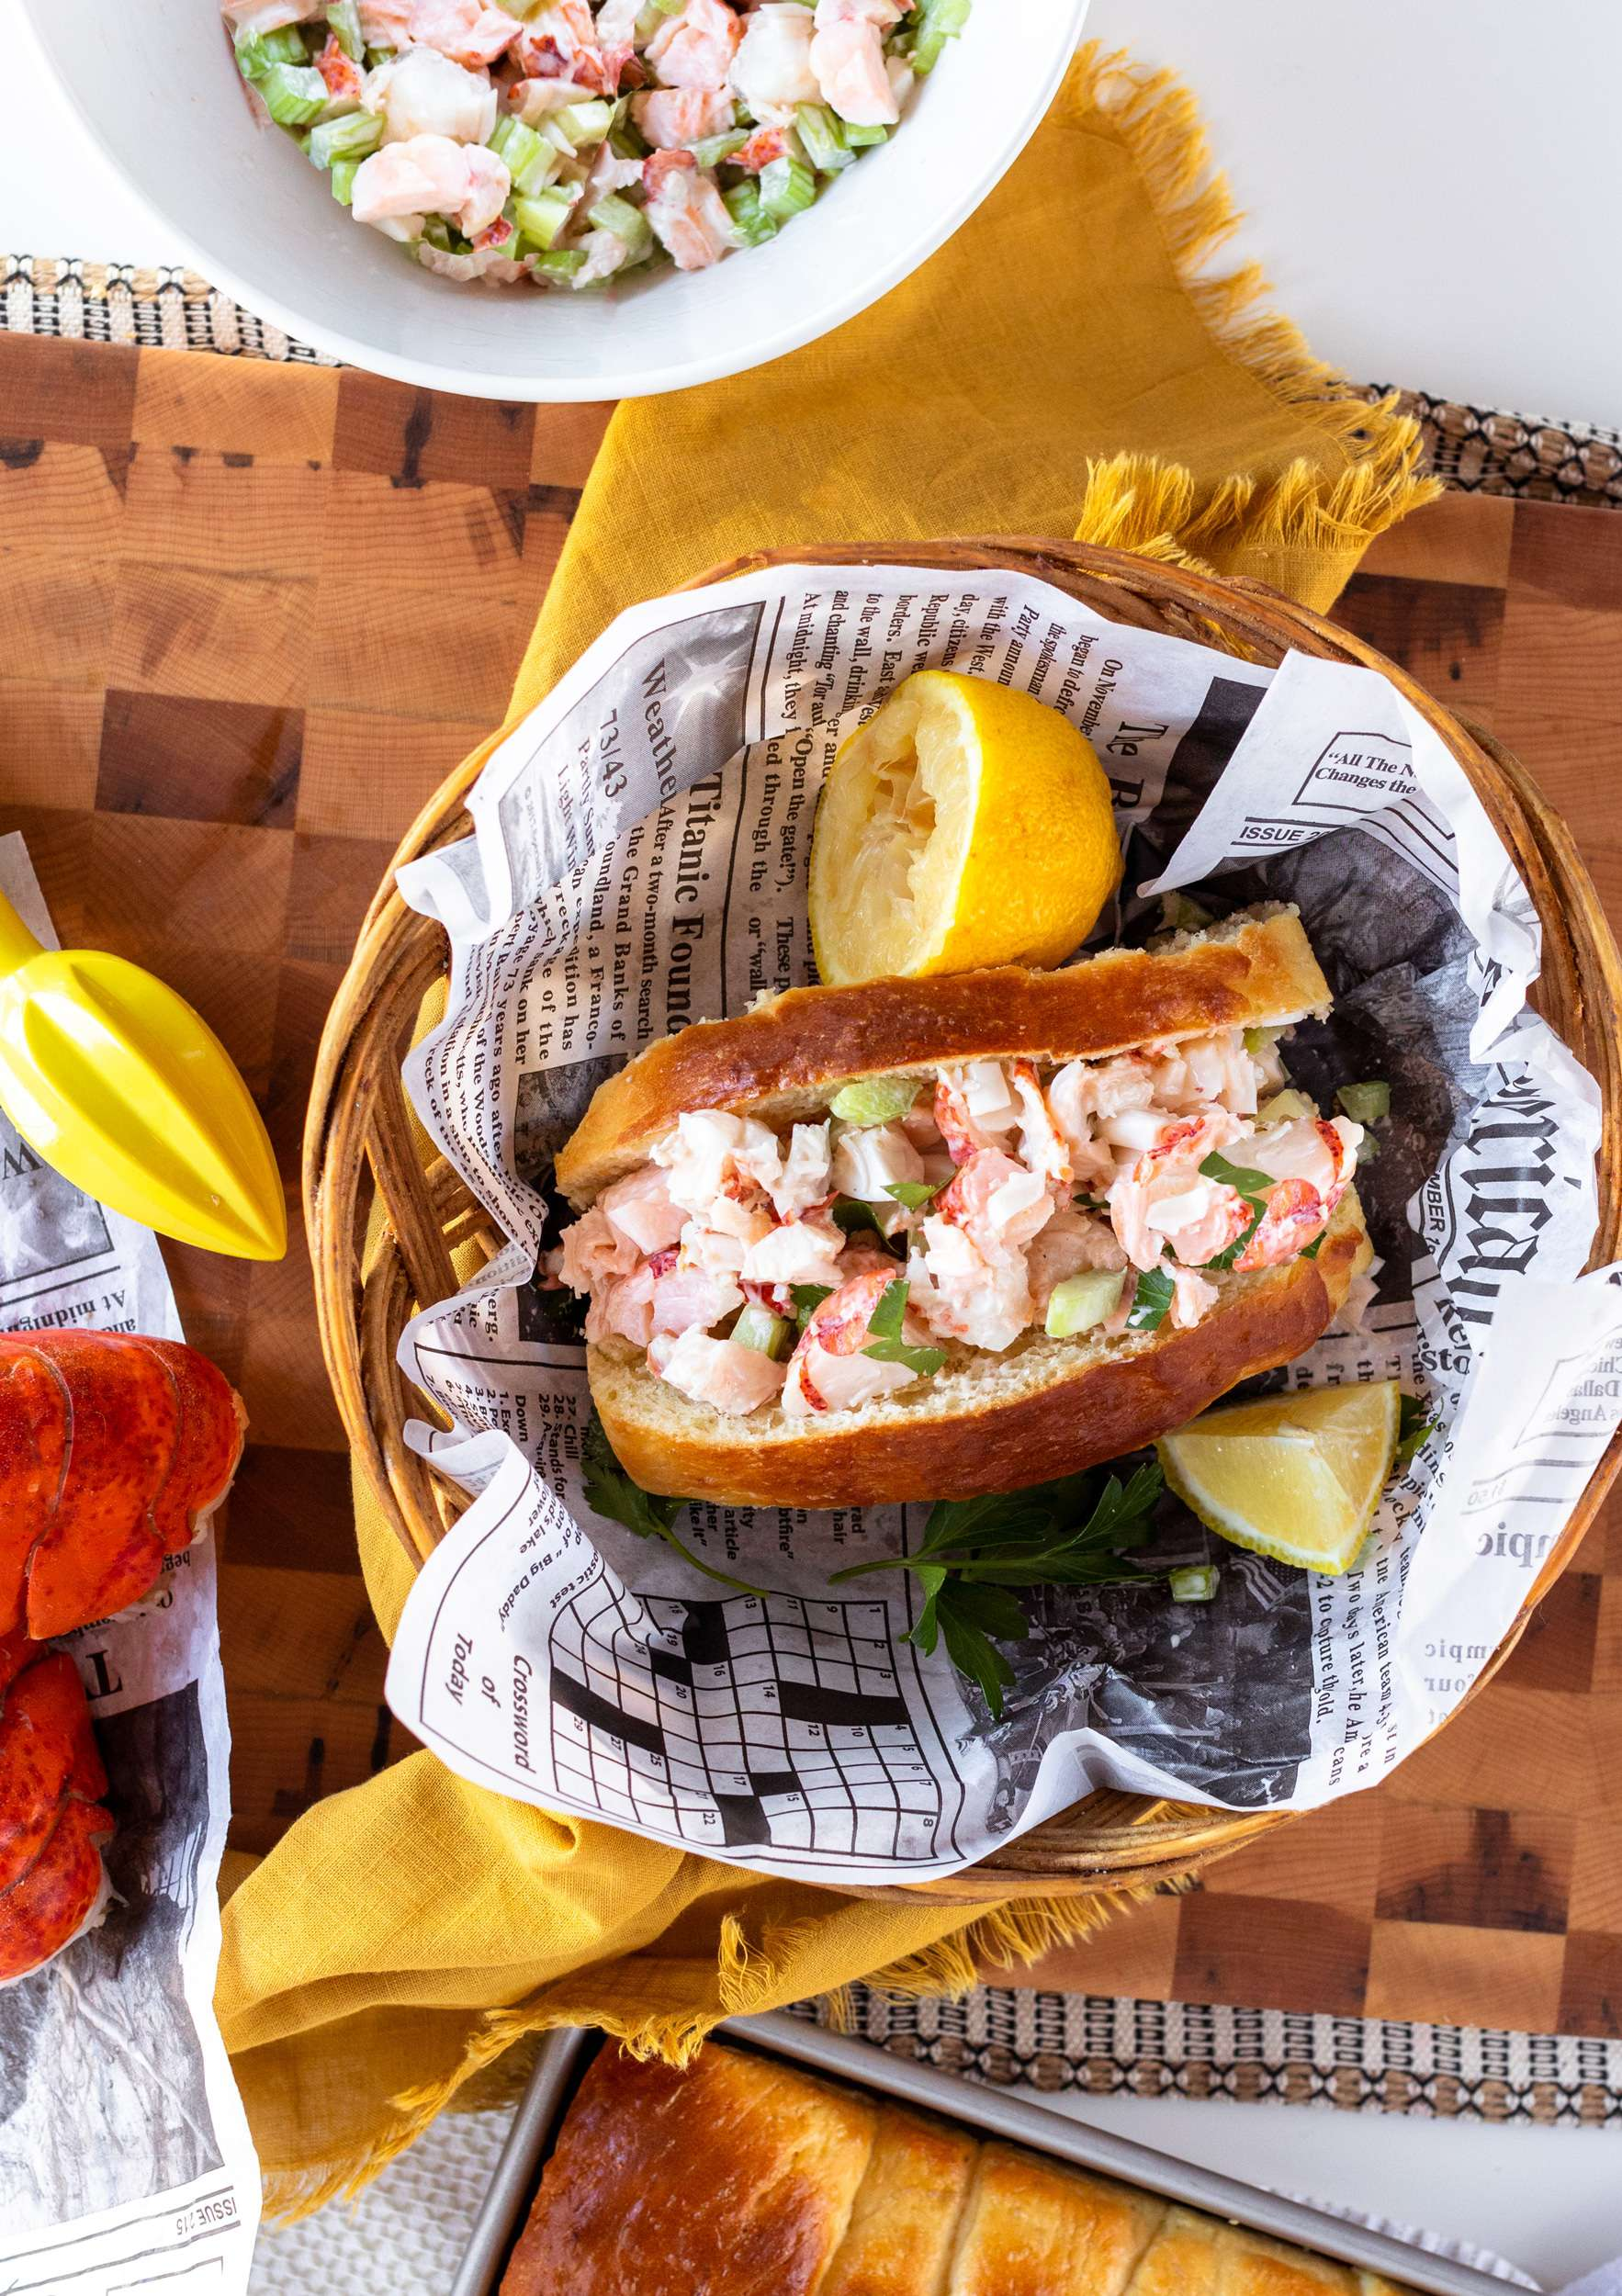 Maine Lobster Rolls with homemade New England Style Rolls